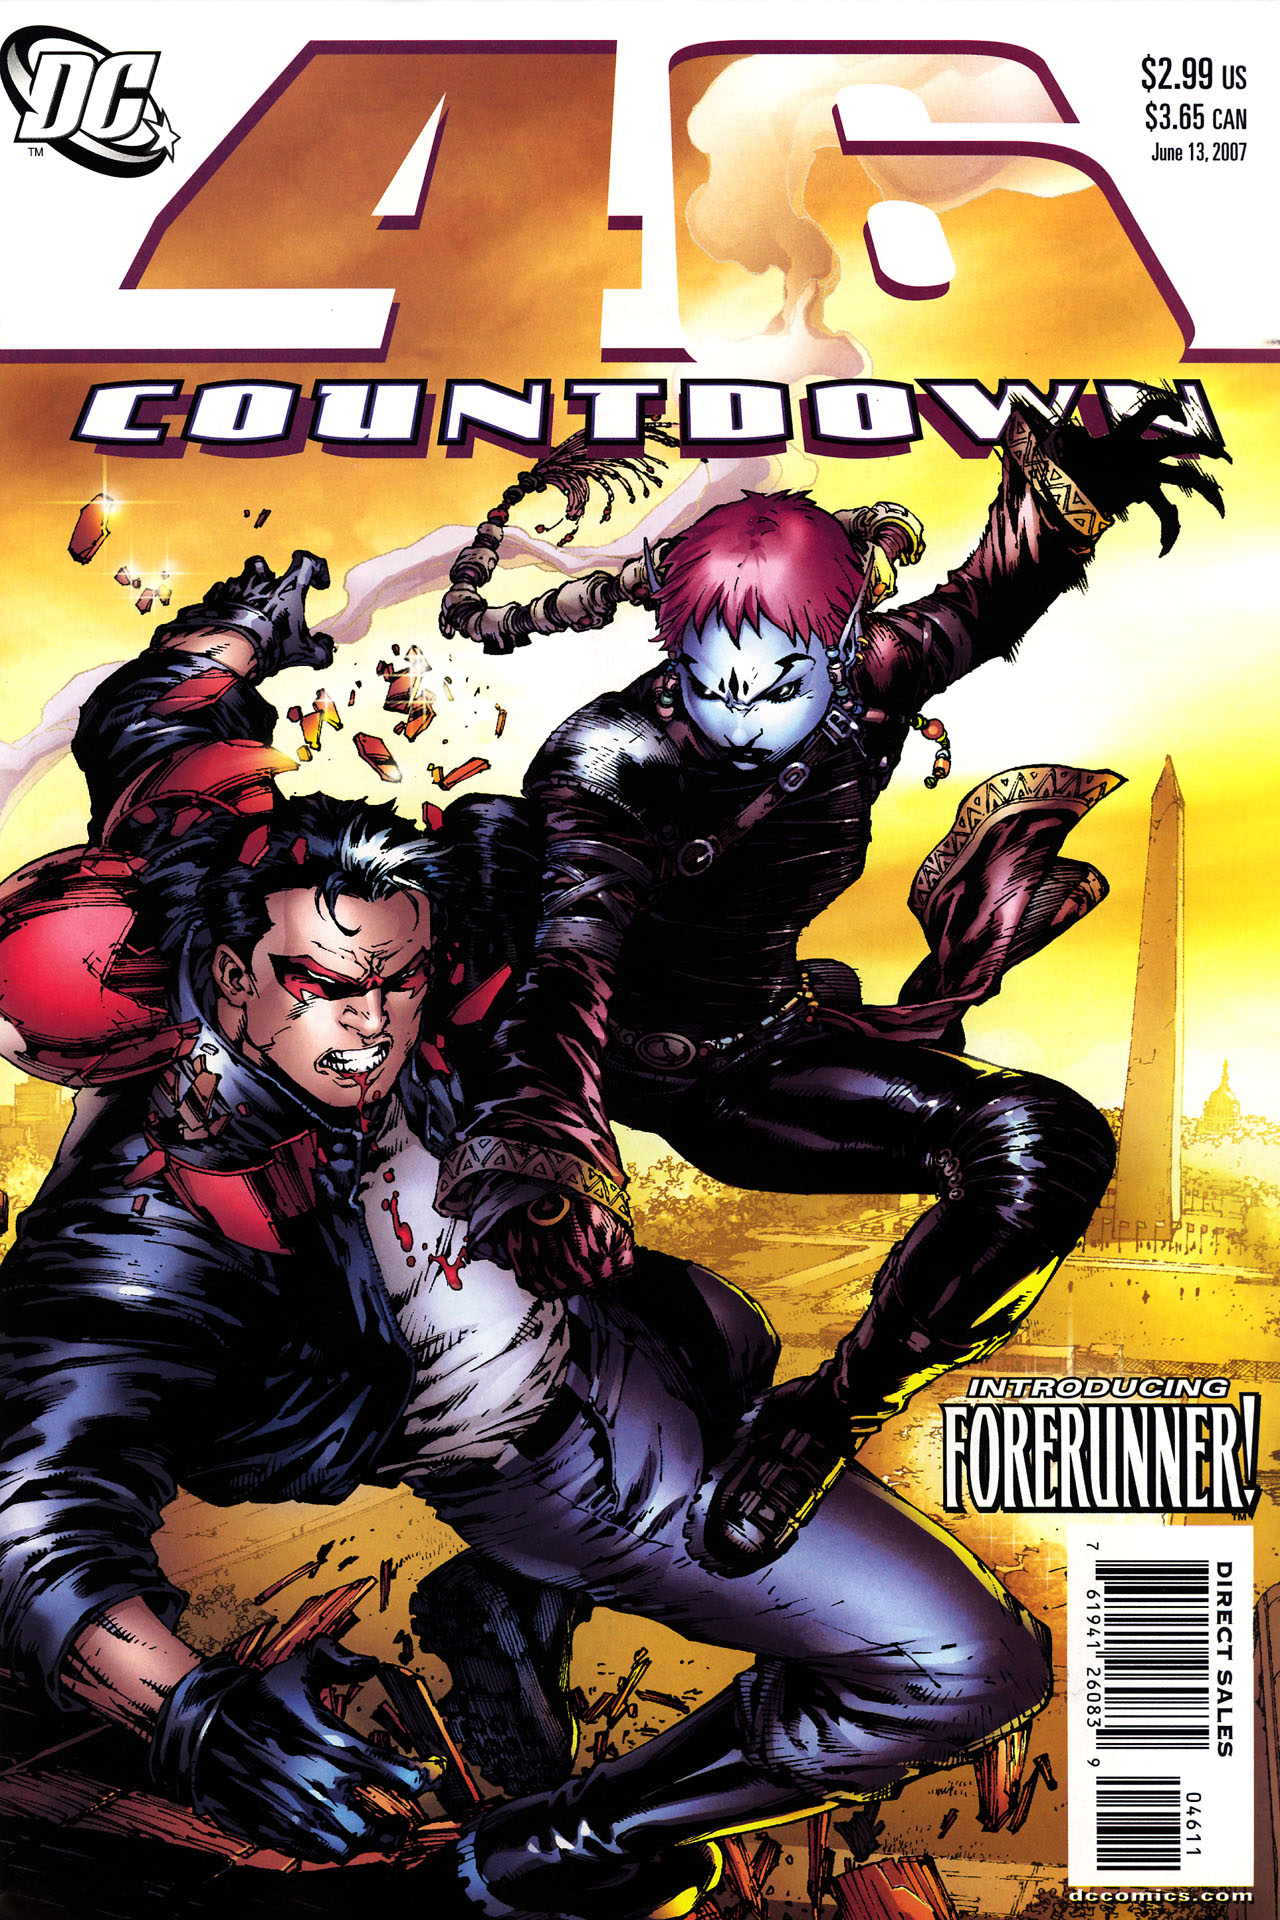 Countdown (2007) 46 Page 1